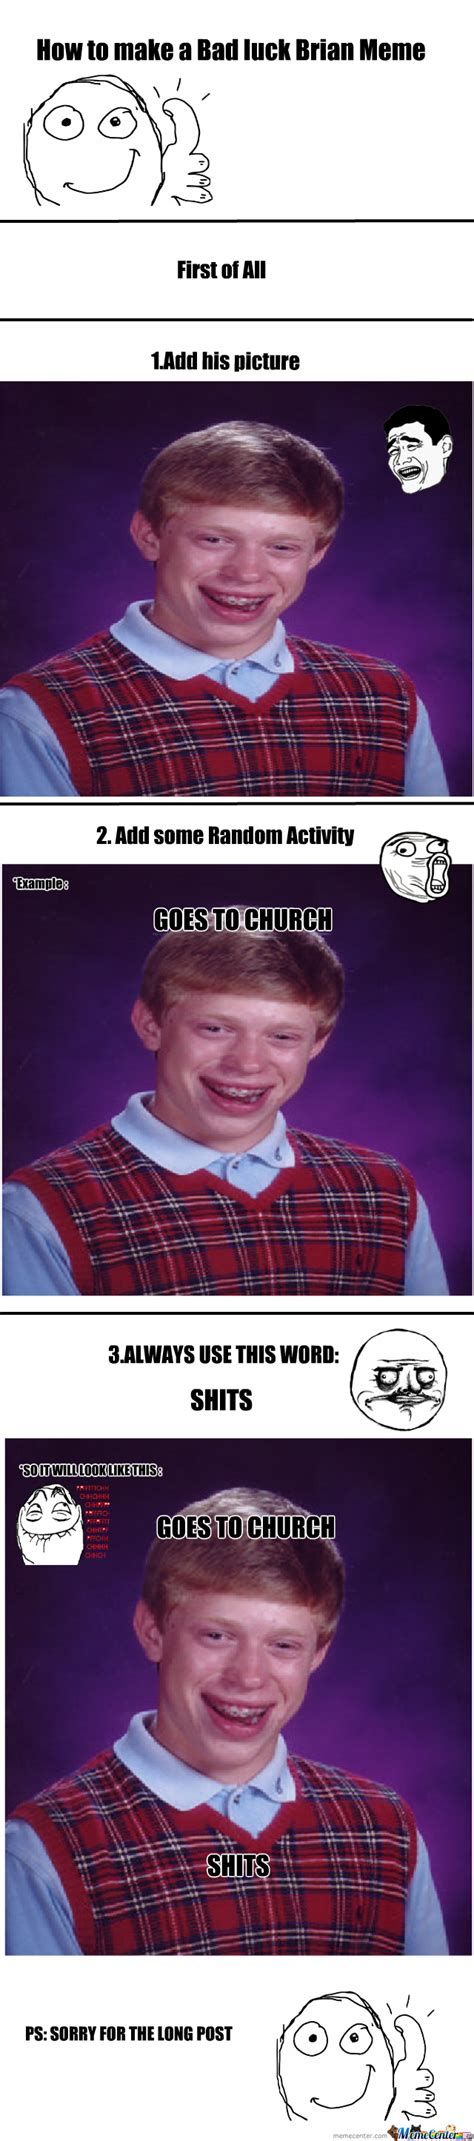 how to make bad luck brian meme by mrcornell meme center